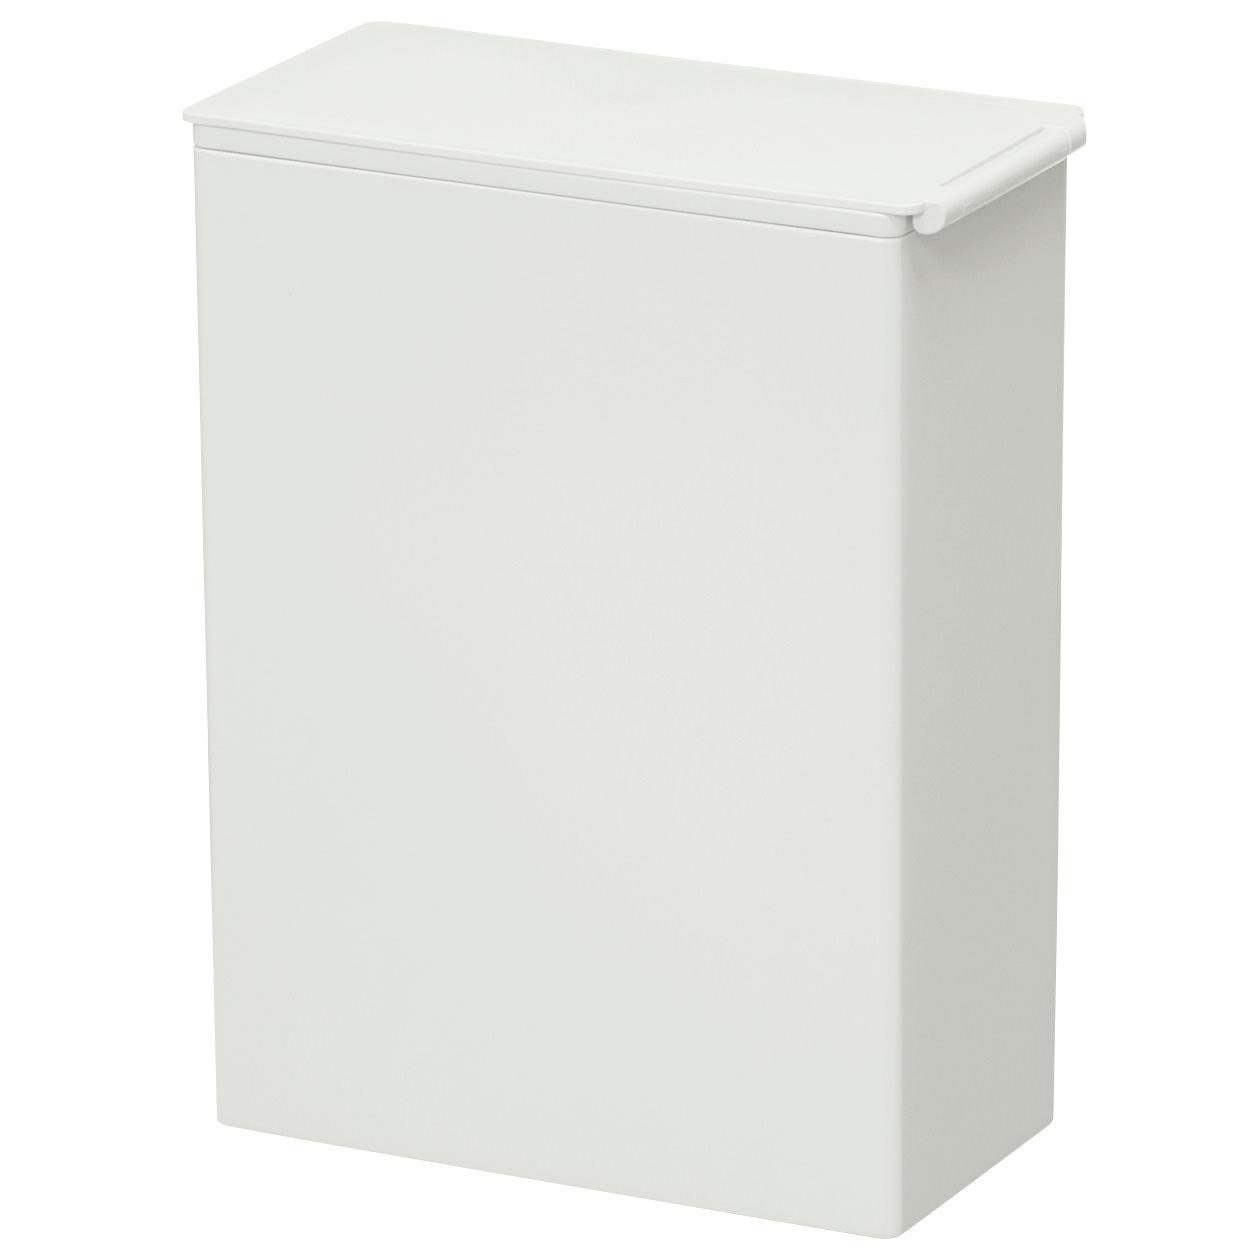 (OVERSEAS SPEC) PP DUST BIN SQUARE W/BAG STOPPER/S